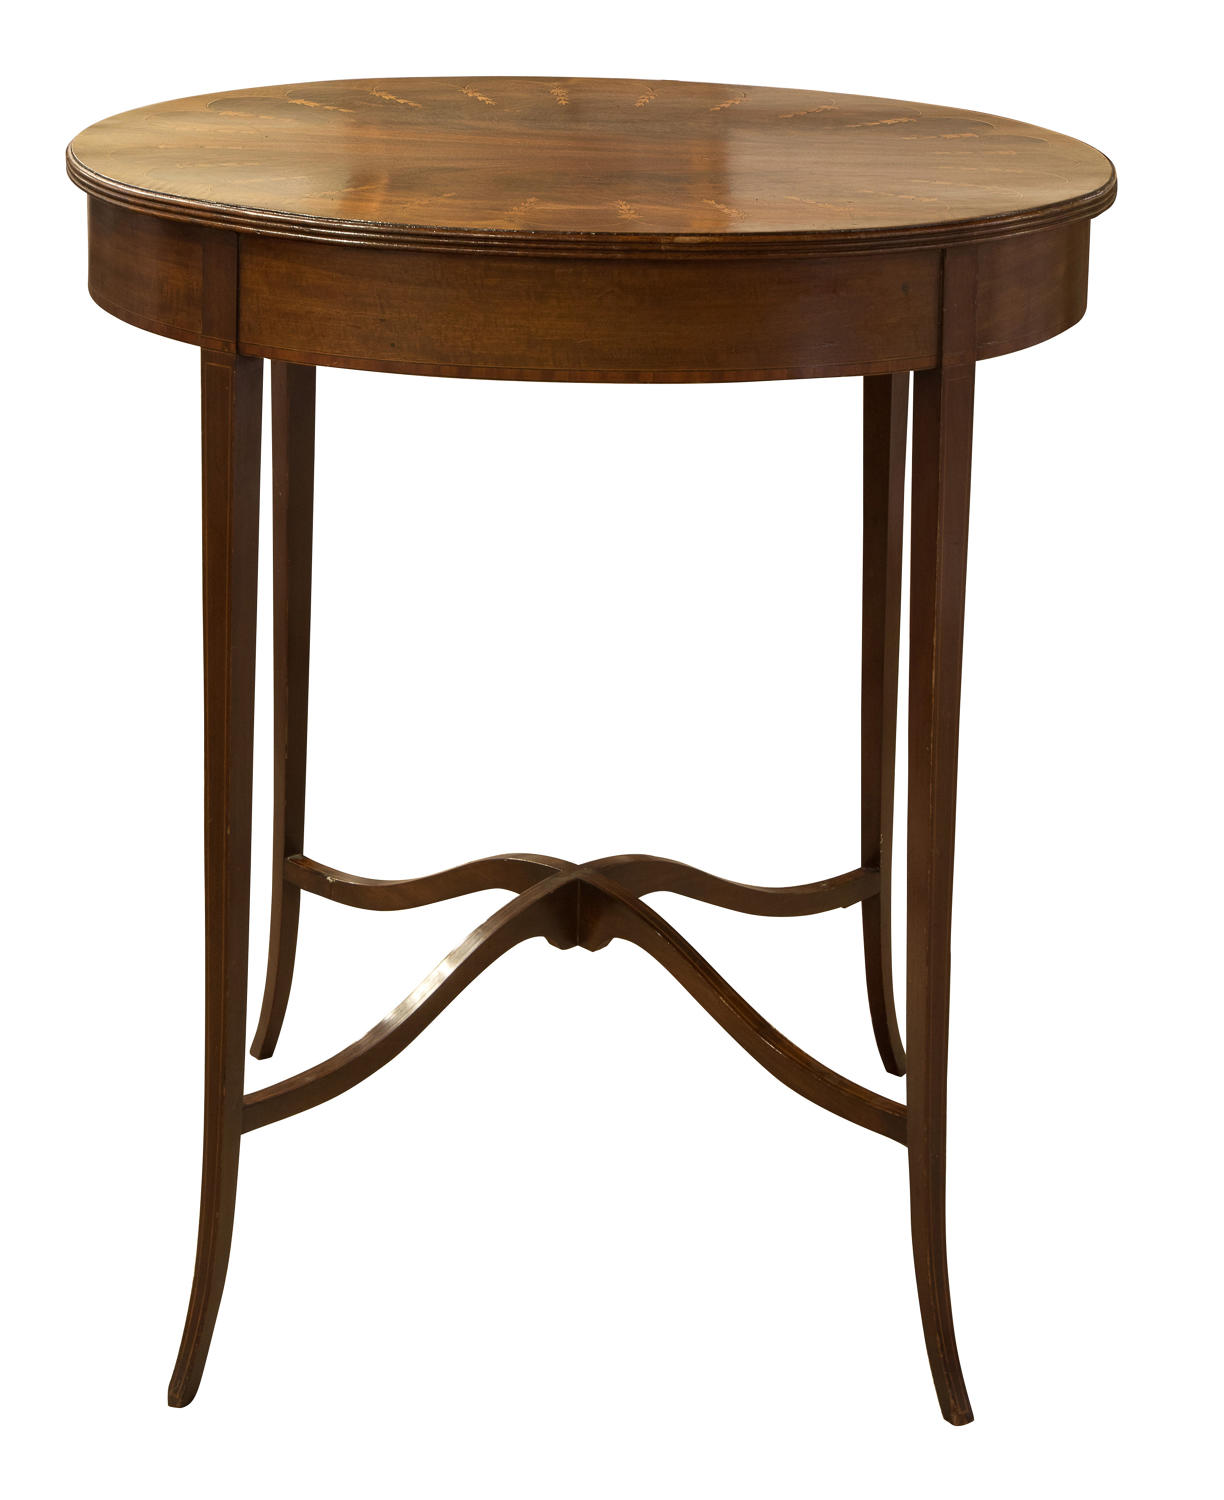 Edwardian table with decorative inlay